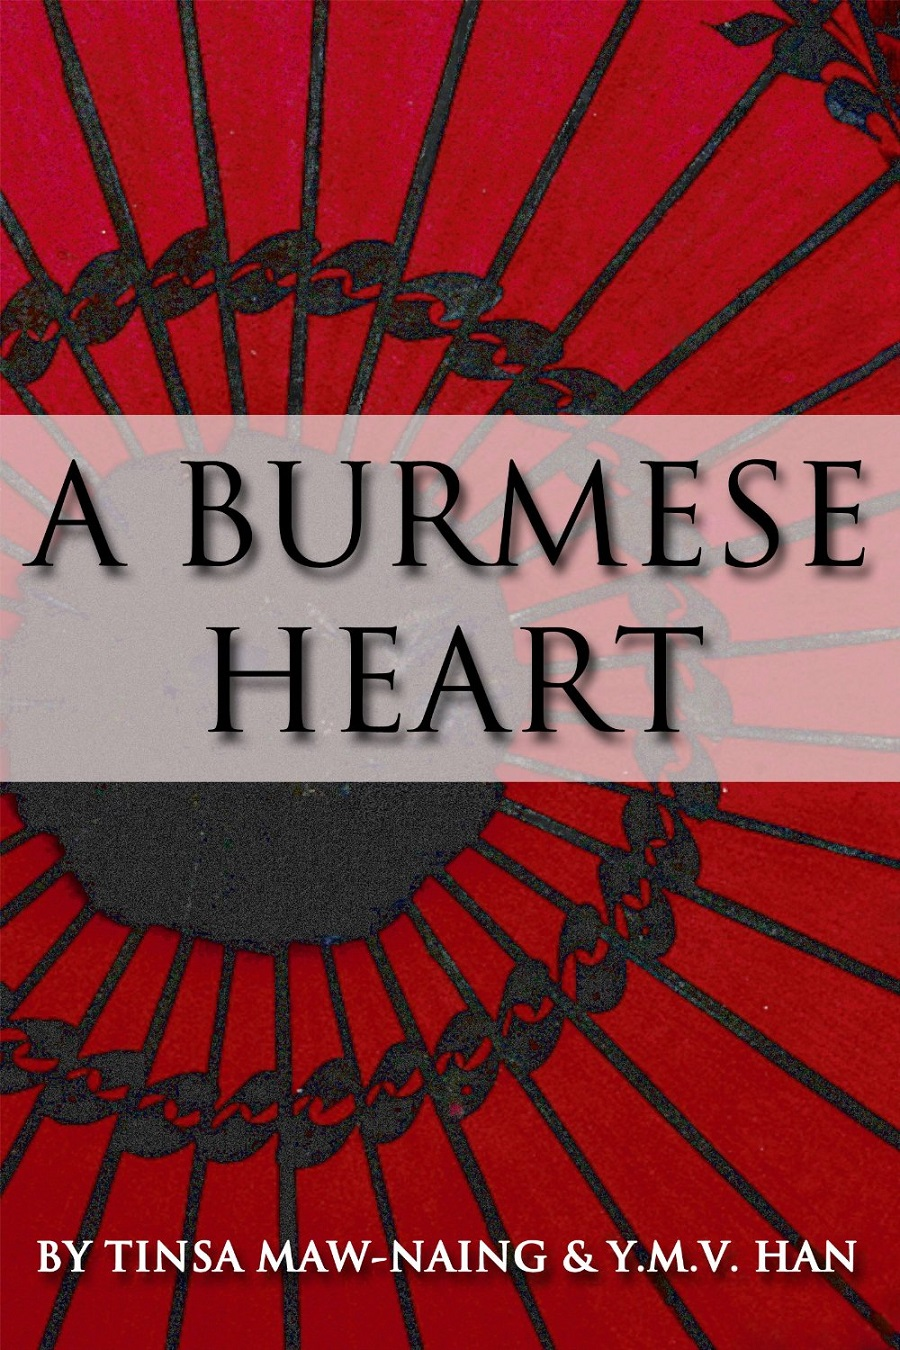 A Burmese Heart by Y. M. V. Han and Tinsa Maw-Naing